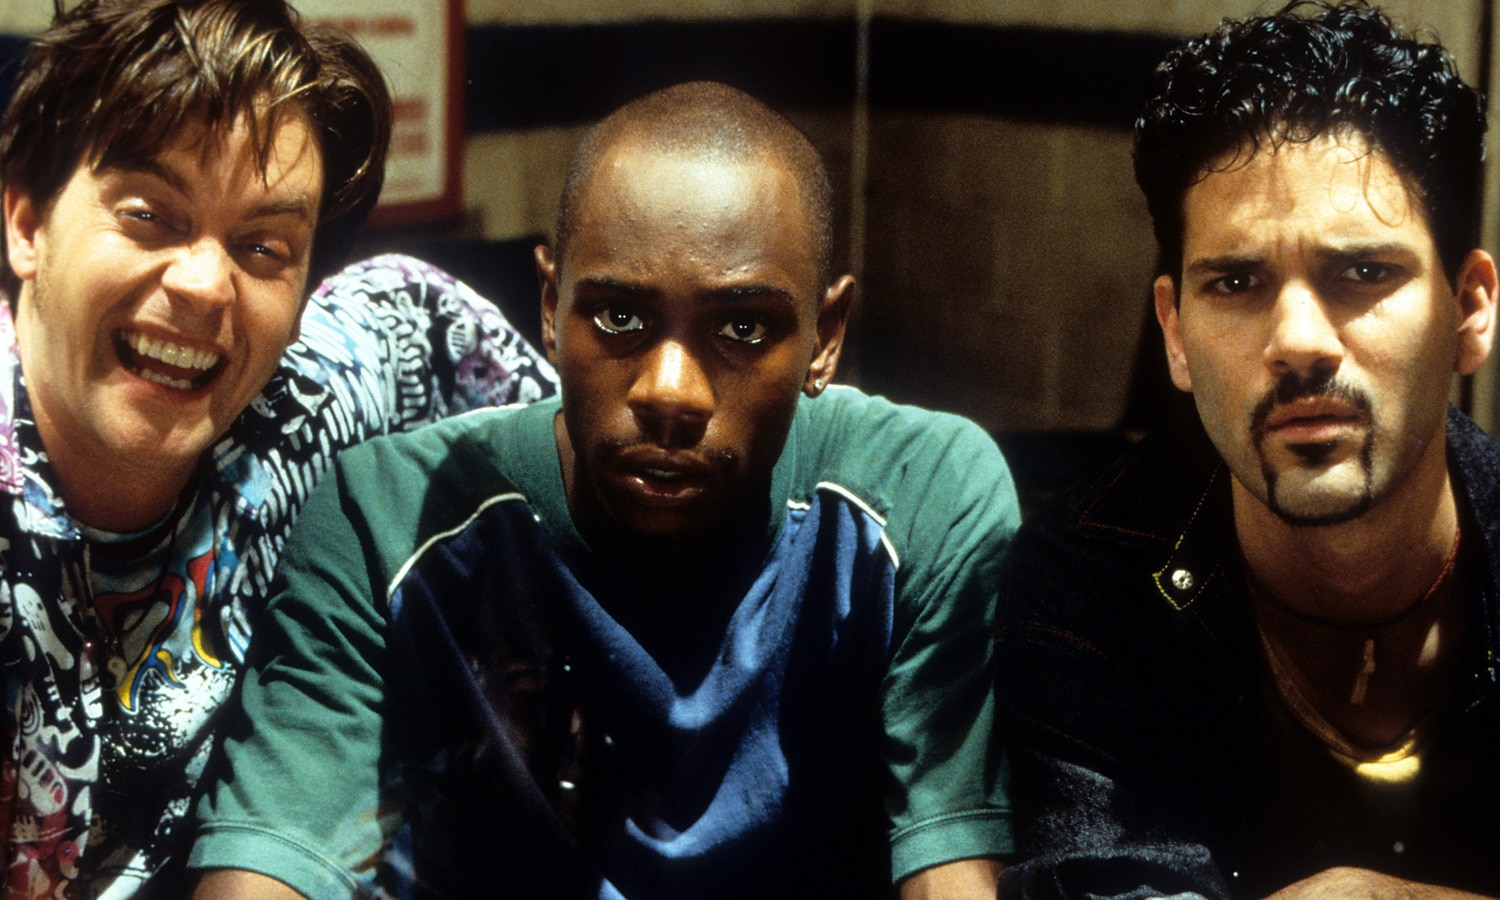 'Half Baked 2' Movie May Actually Happen, But With A Catch - The Fresh Toast